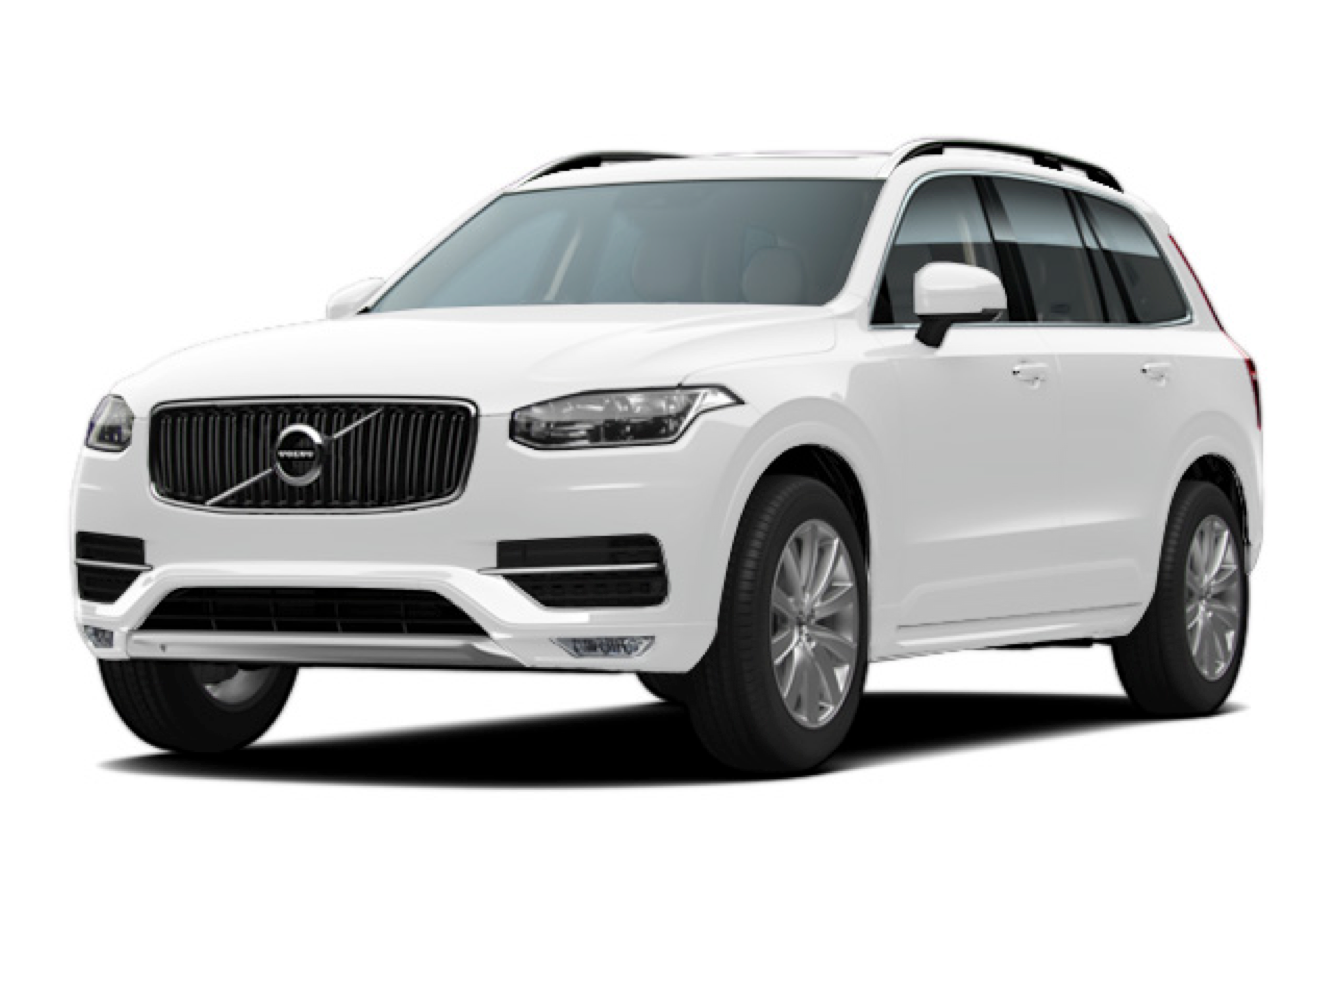 2016 Volvo XC90 Hybrid For Sale In Boston, MA | 128 Volvo